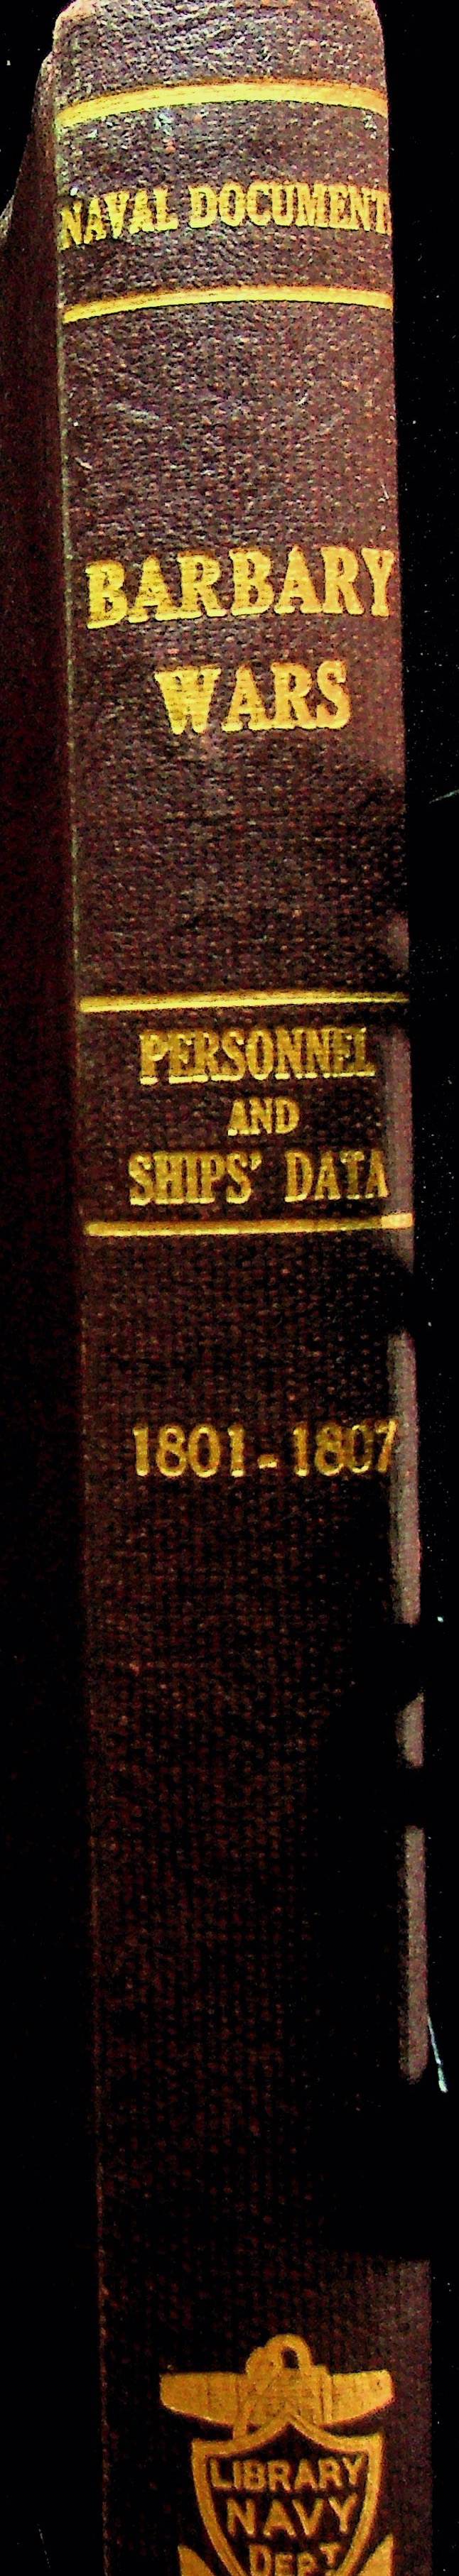 Image for Barbary Wars: Register of Officer Personnel, United States Navy and Marine Corps, and Ships' Data, 1801-1807